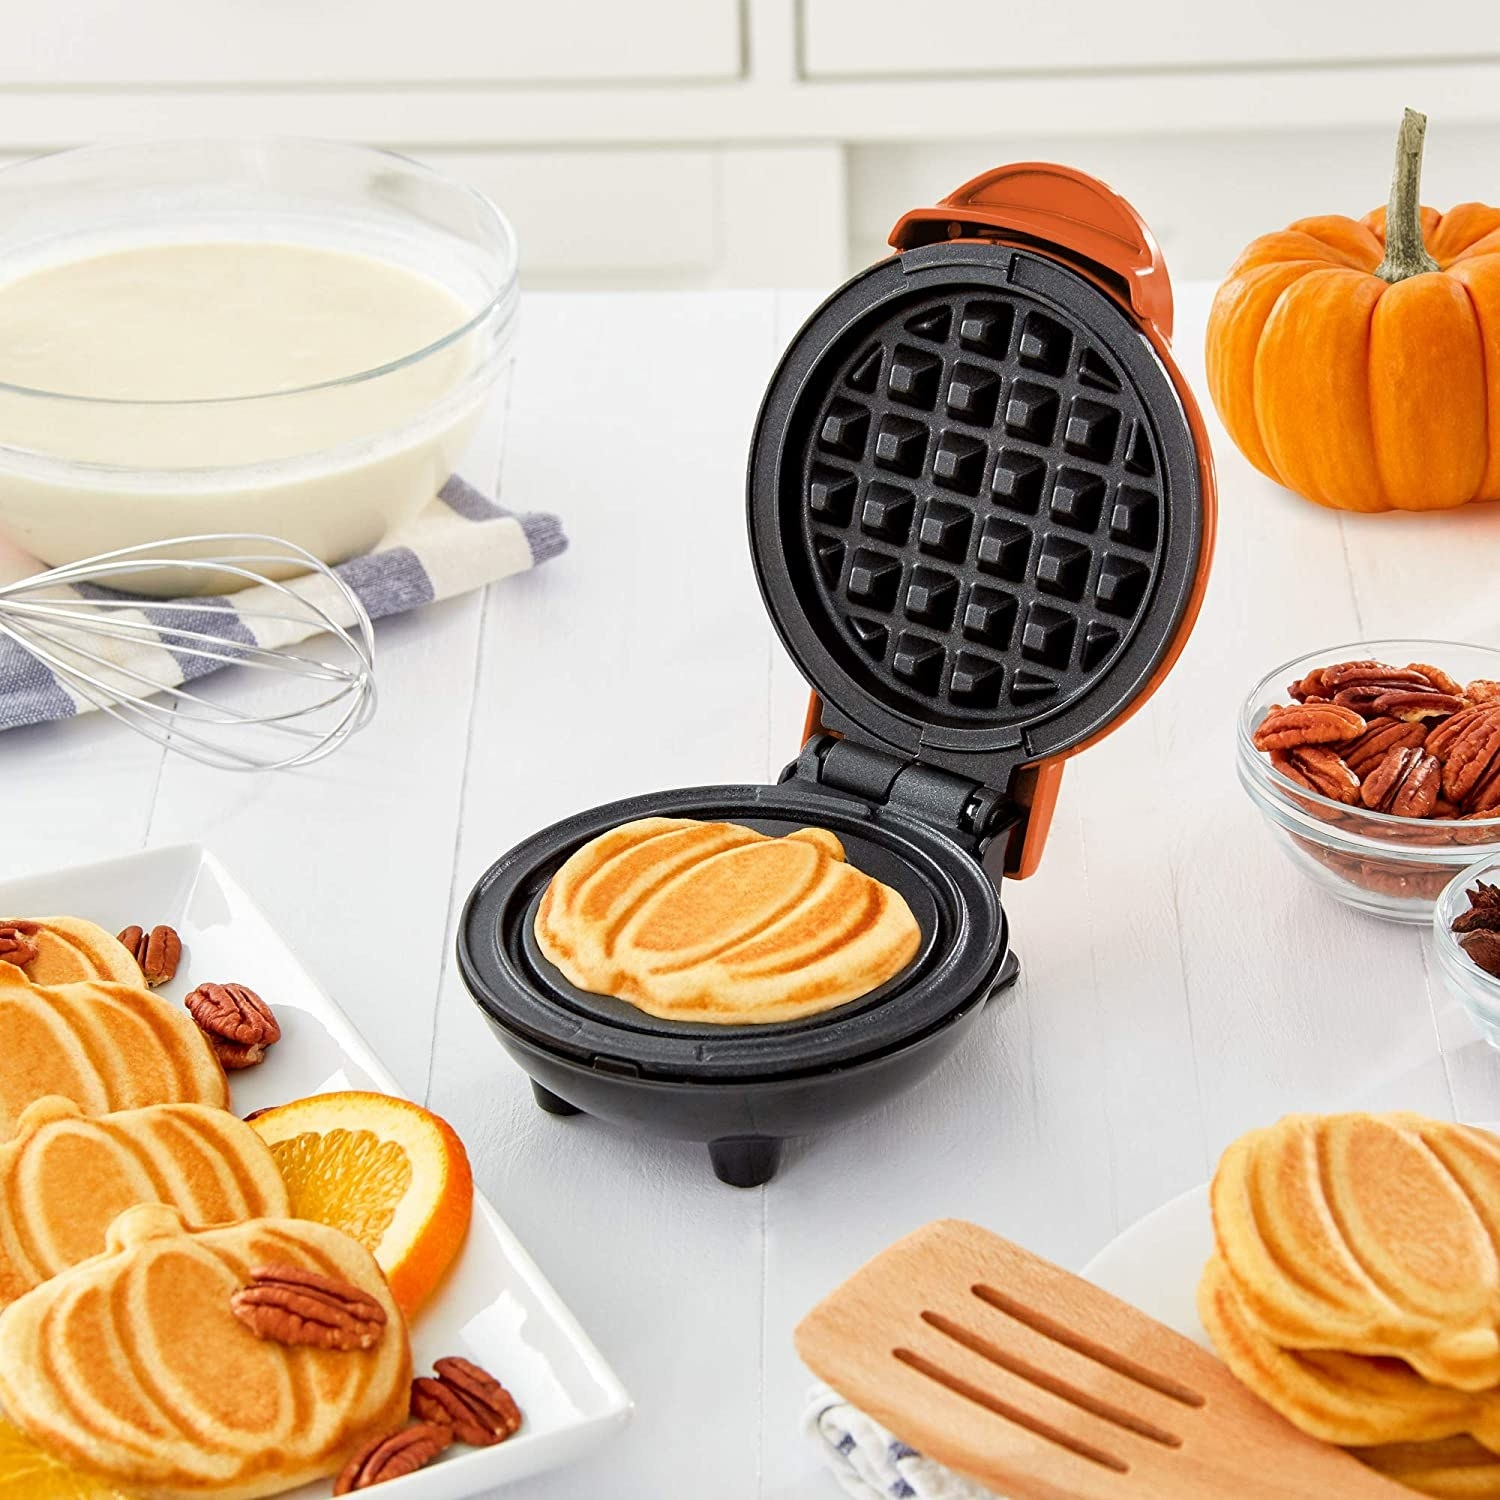 A pumpkin-shaped waffle in the waffle maker, surrounded by stacks of them and batter